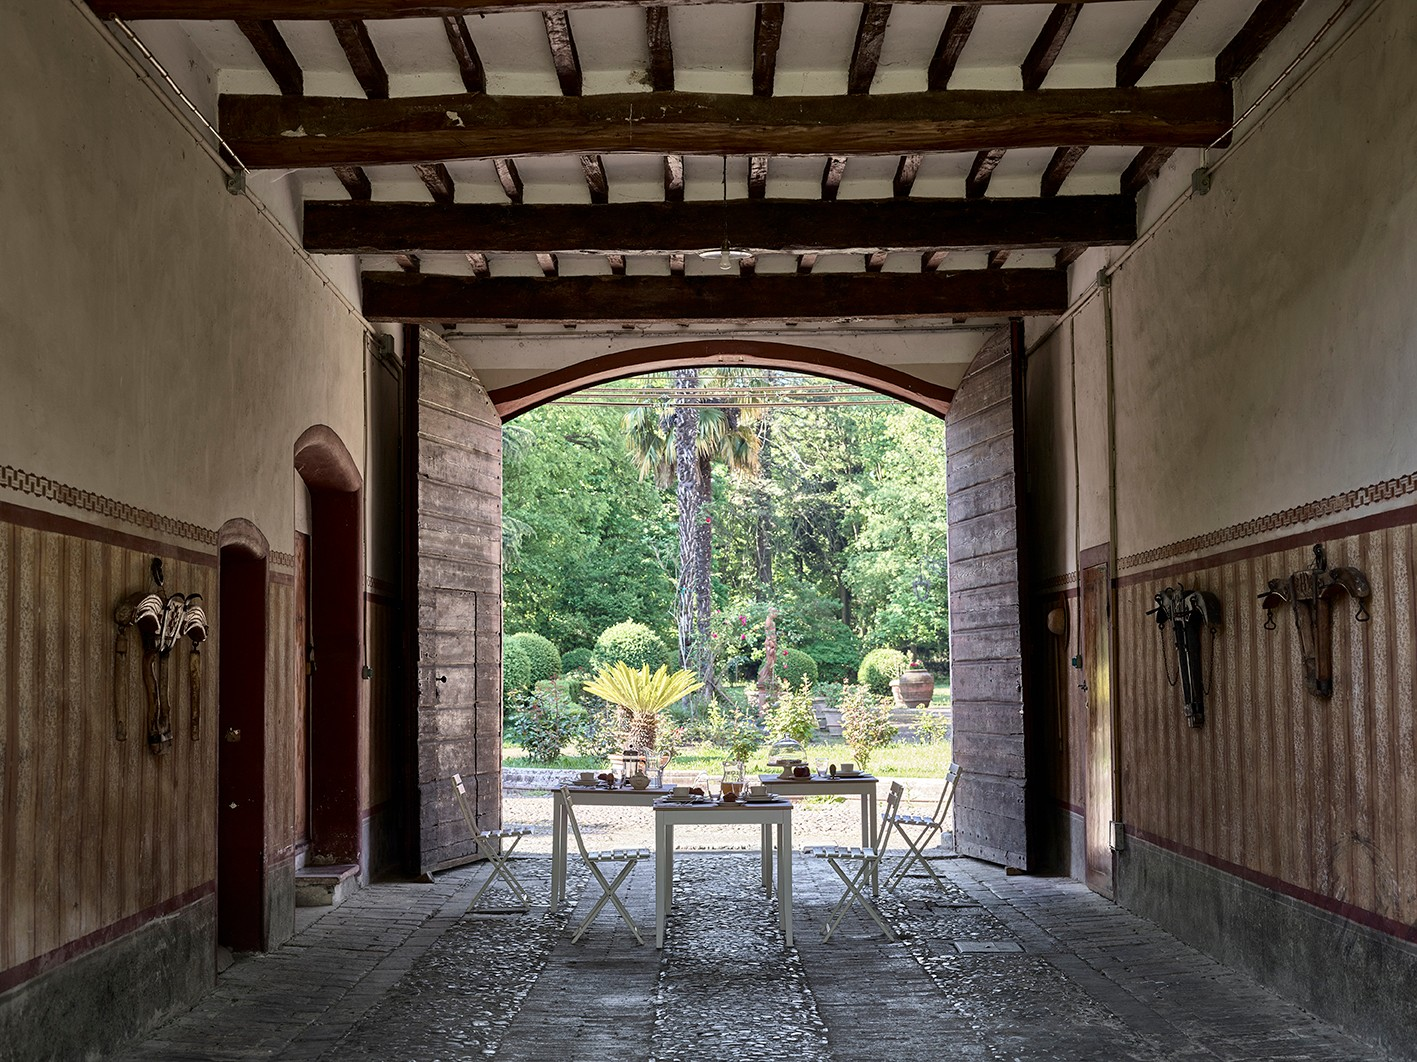 Table in an outdoor arch in Italy